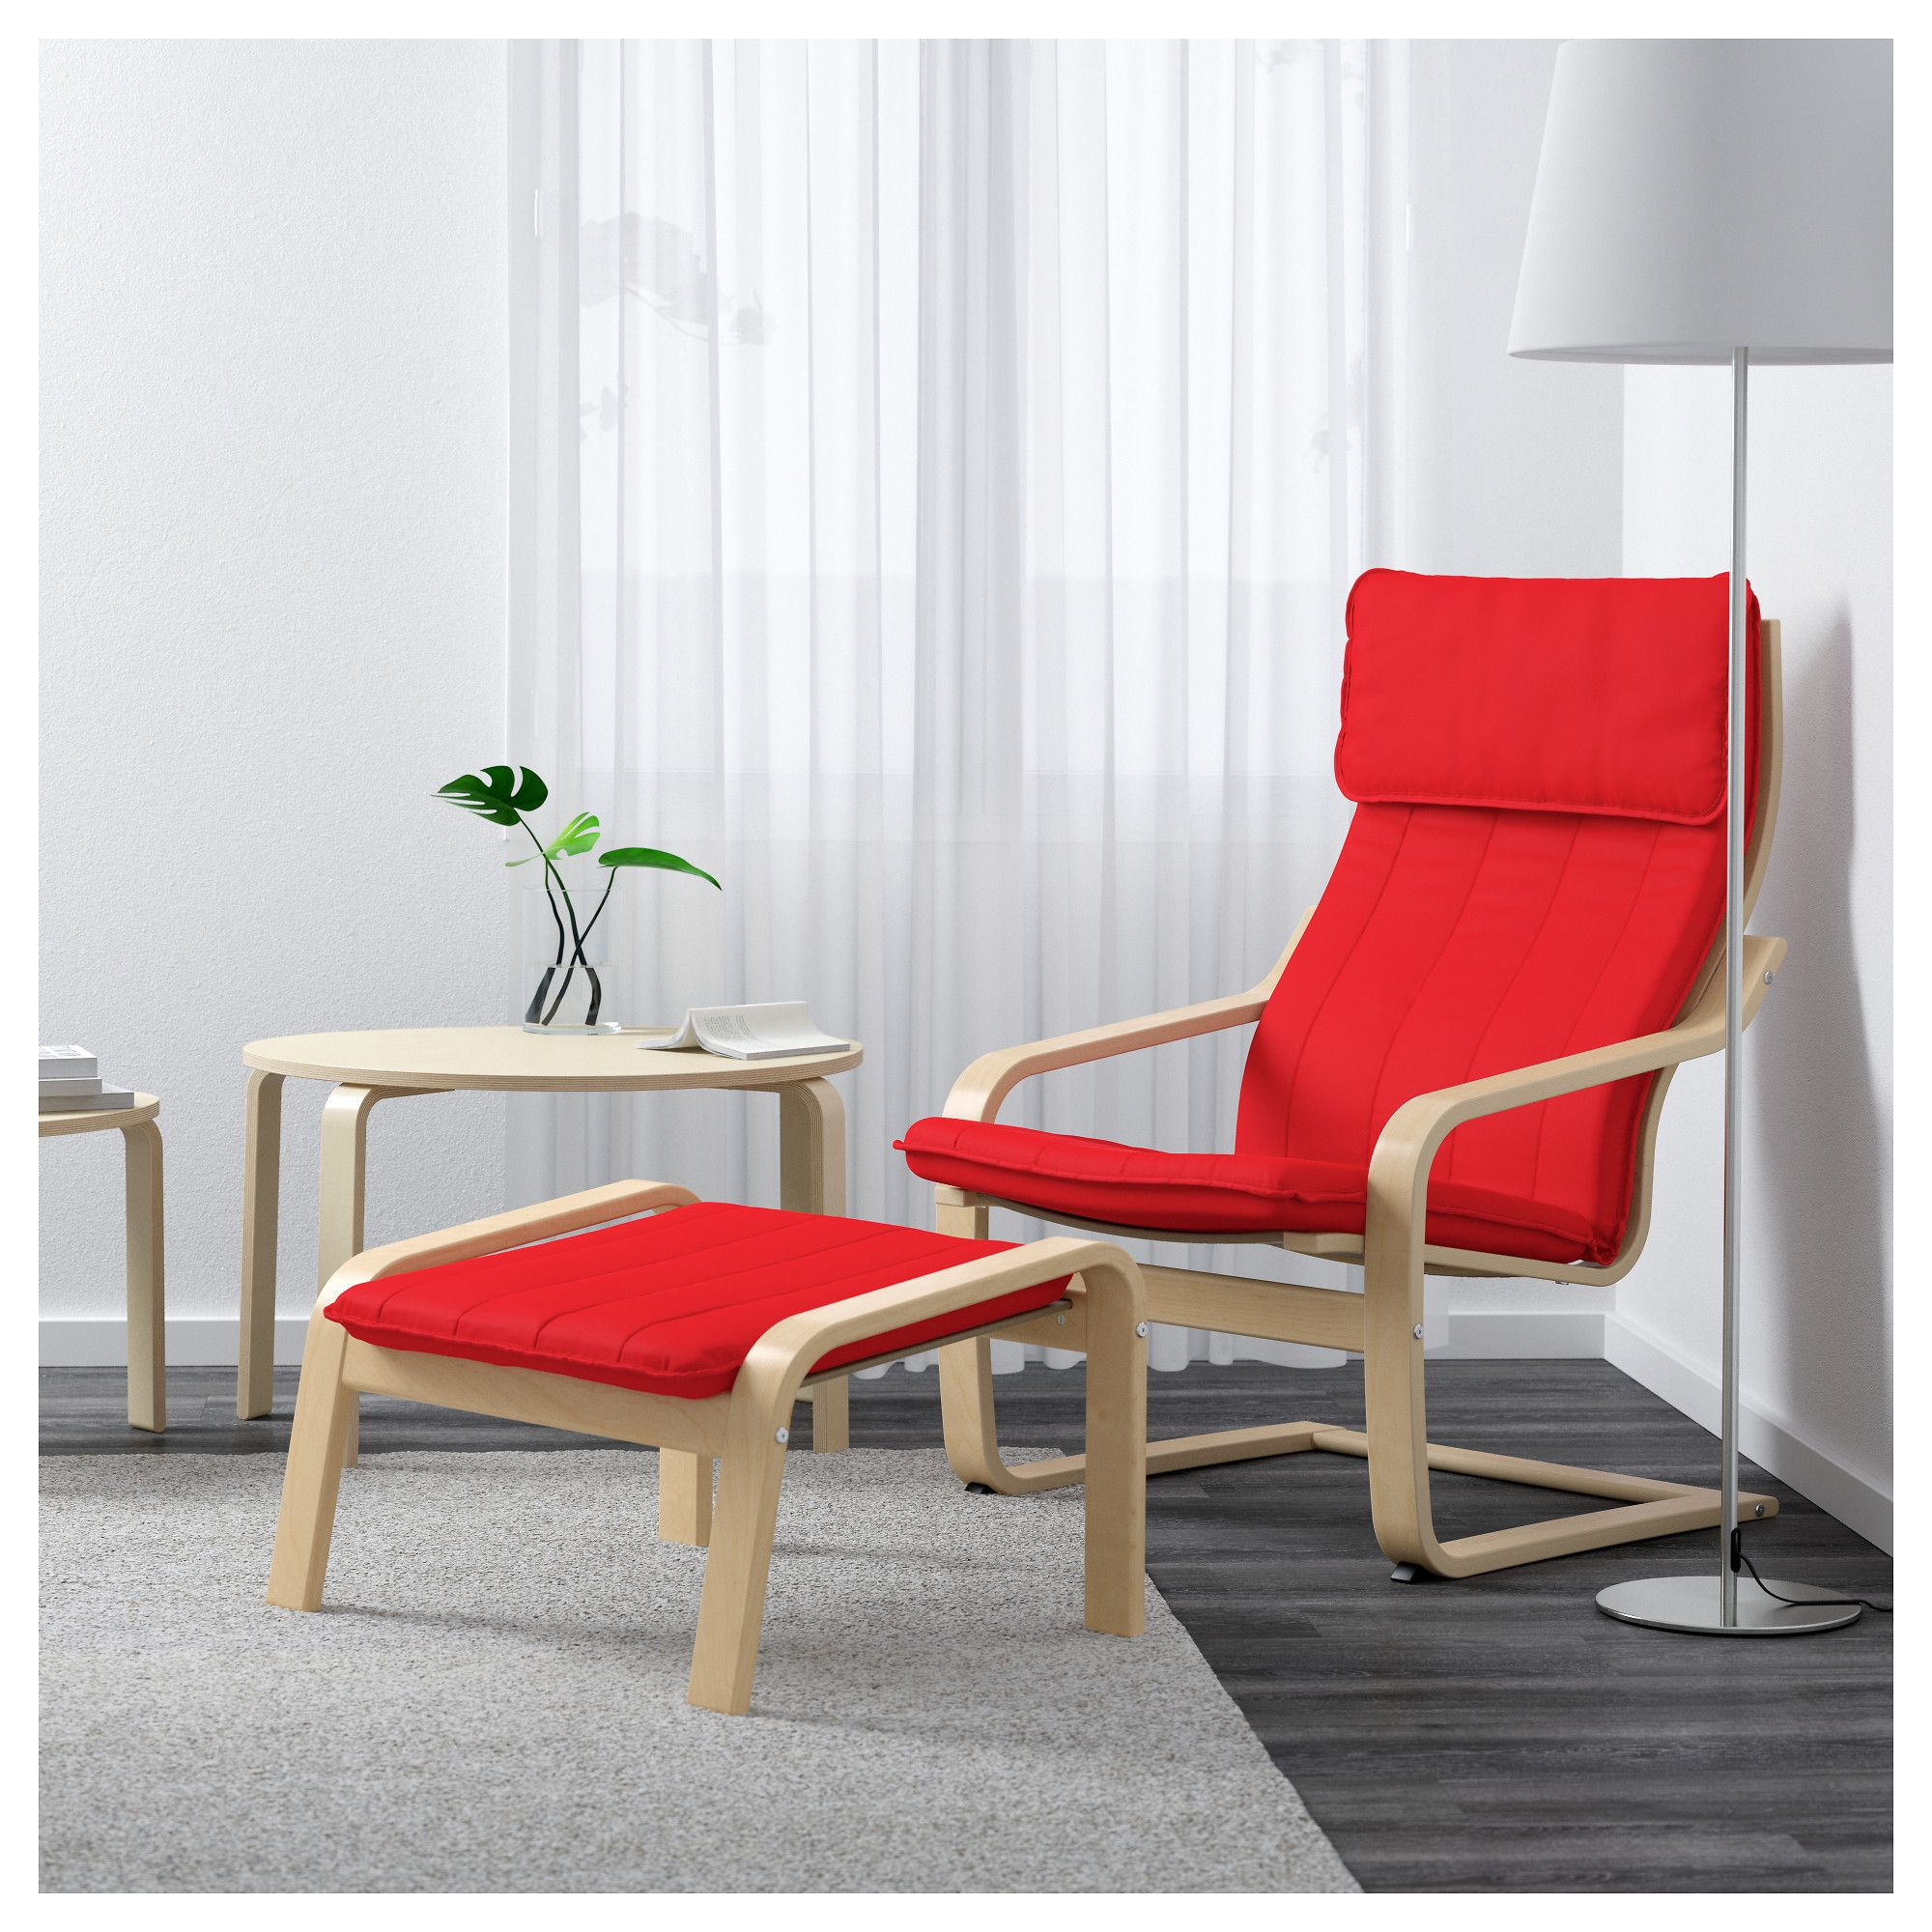 Groovy Furniture And Home Furnishings Sofas For Small Spaces Ibusinesslaw Wood Chair Design Ideas Ibusinesslaworg